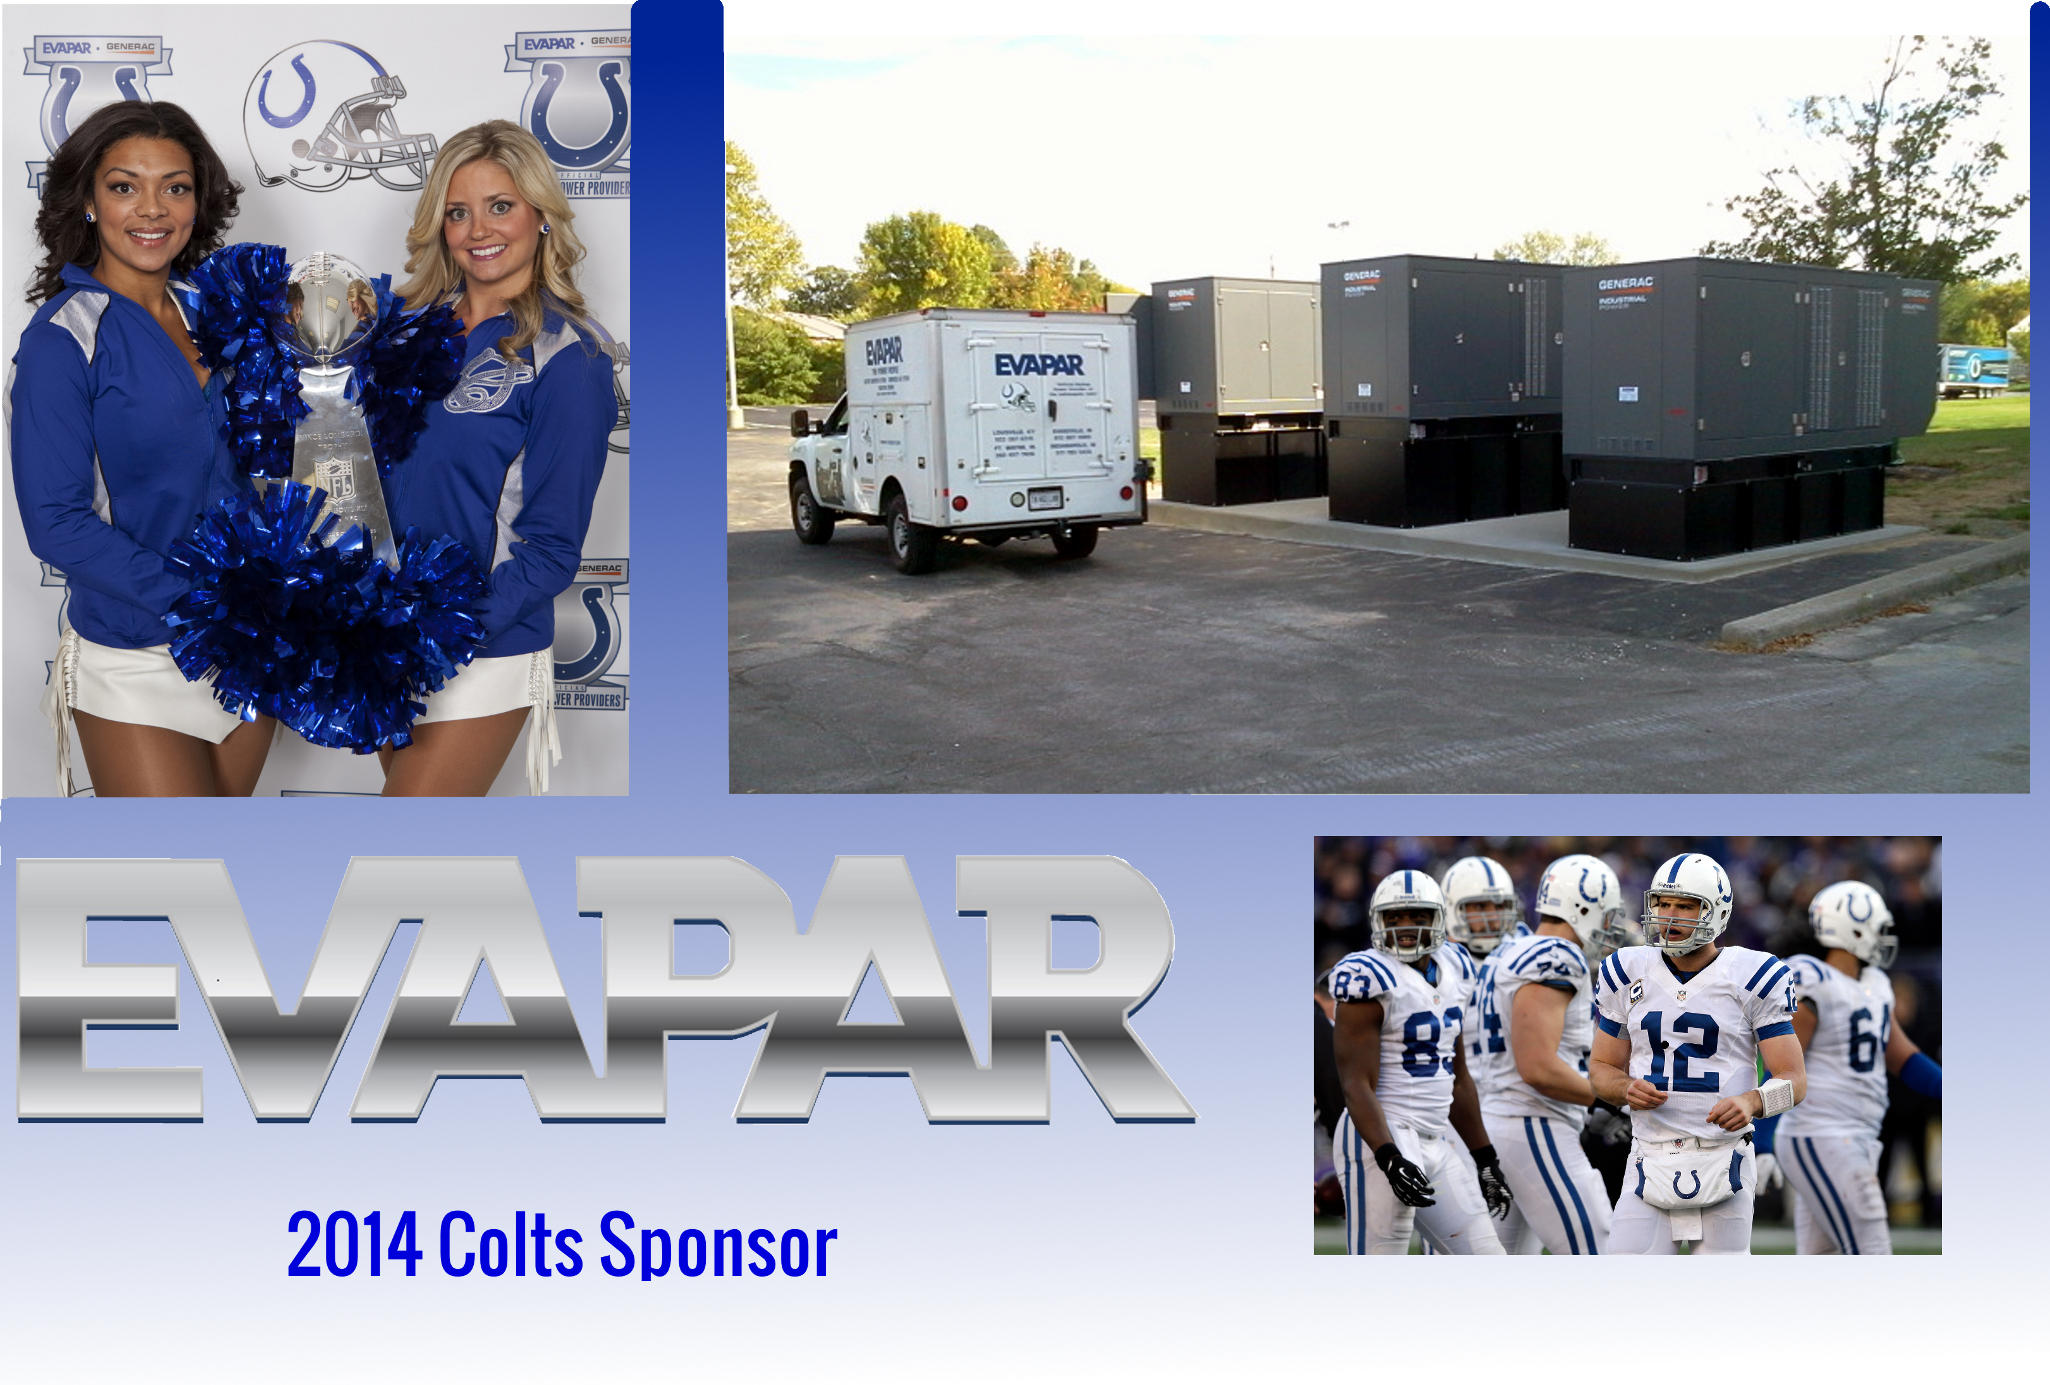 EVAPAR is an Indianapolis Colt's Sponsor for 2014